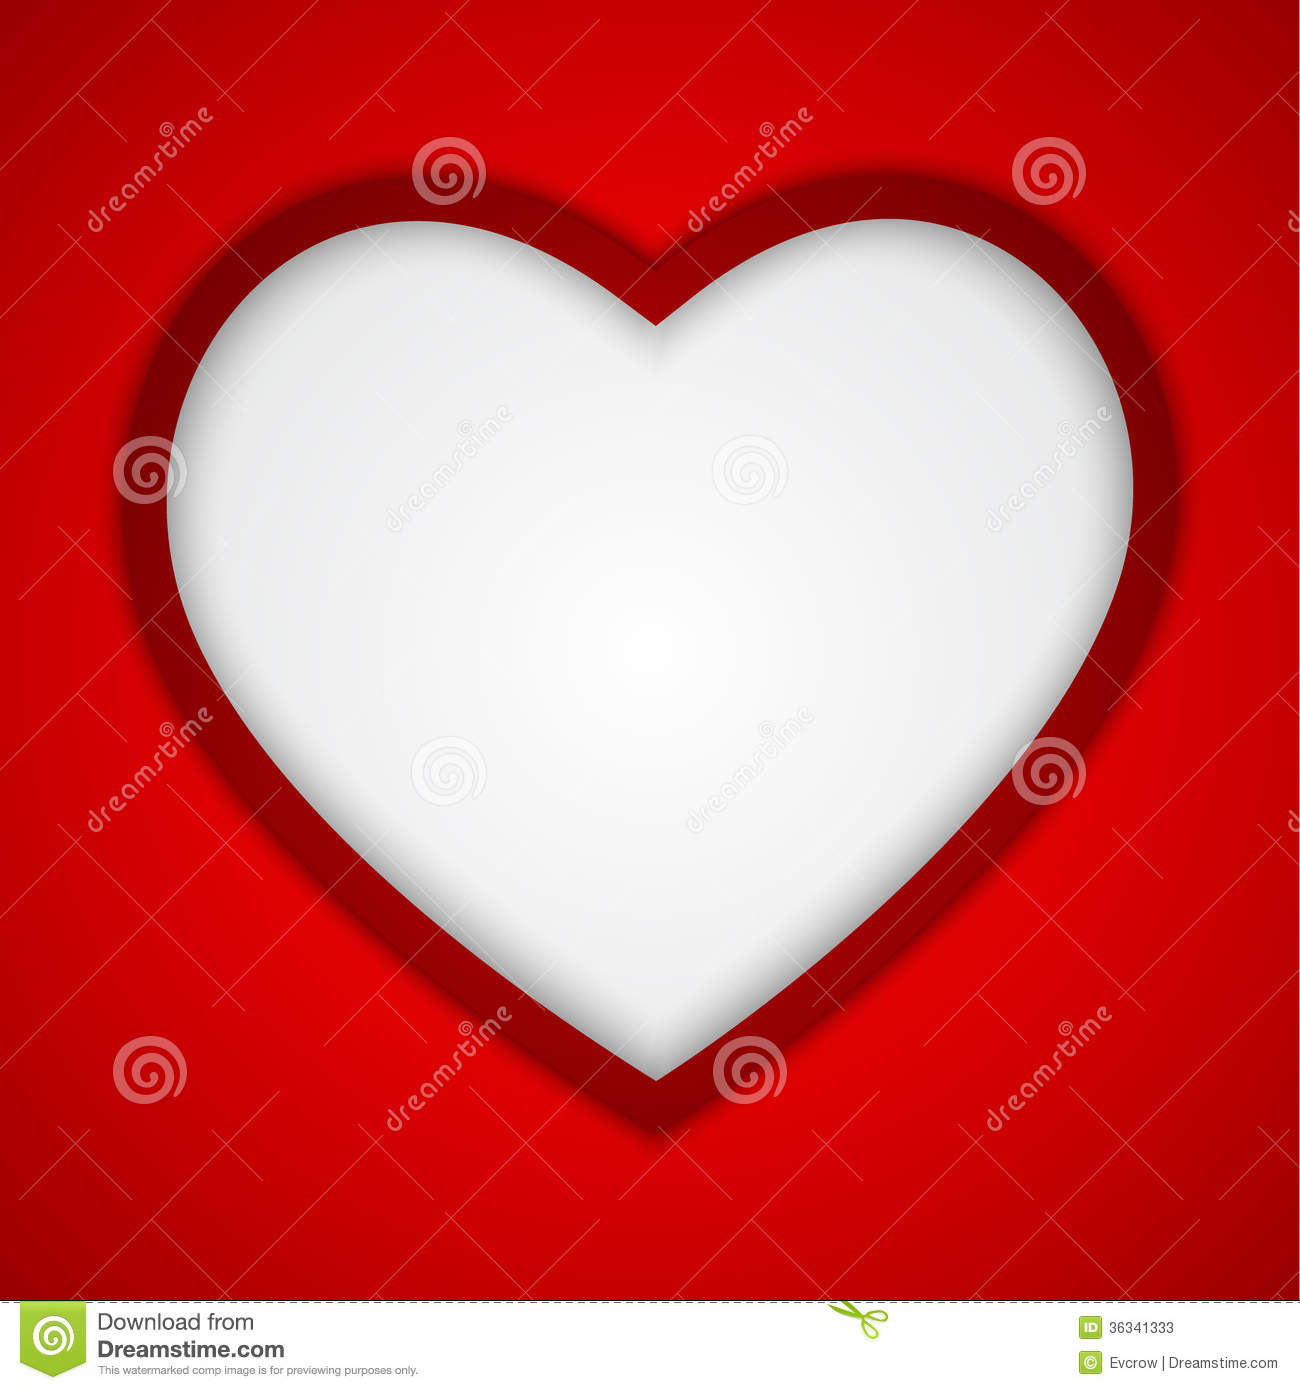 Background With Heart-shape Stock Photos - Image: 36341333